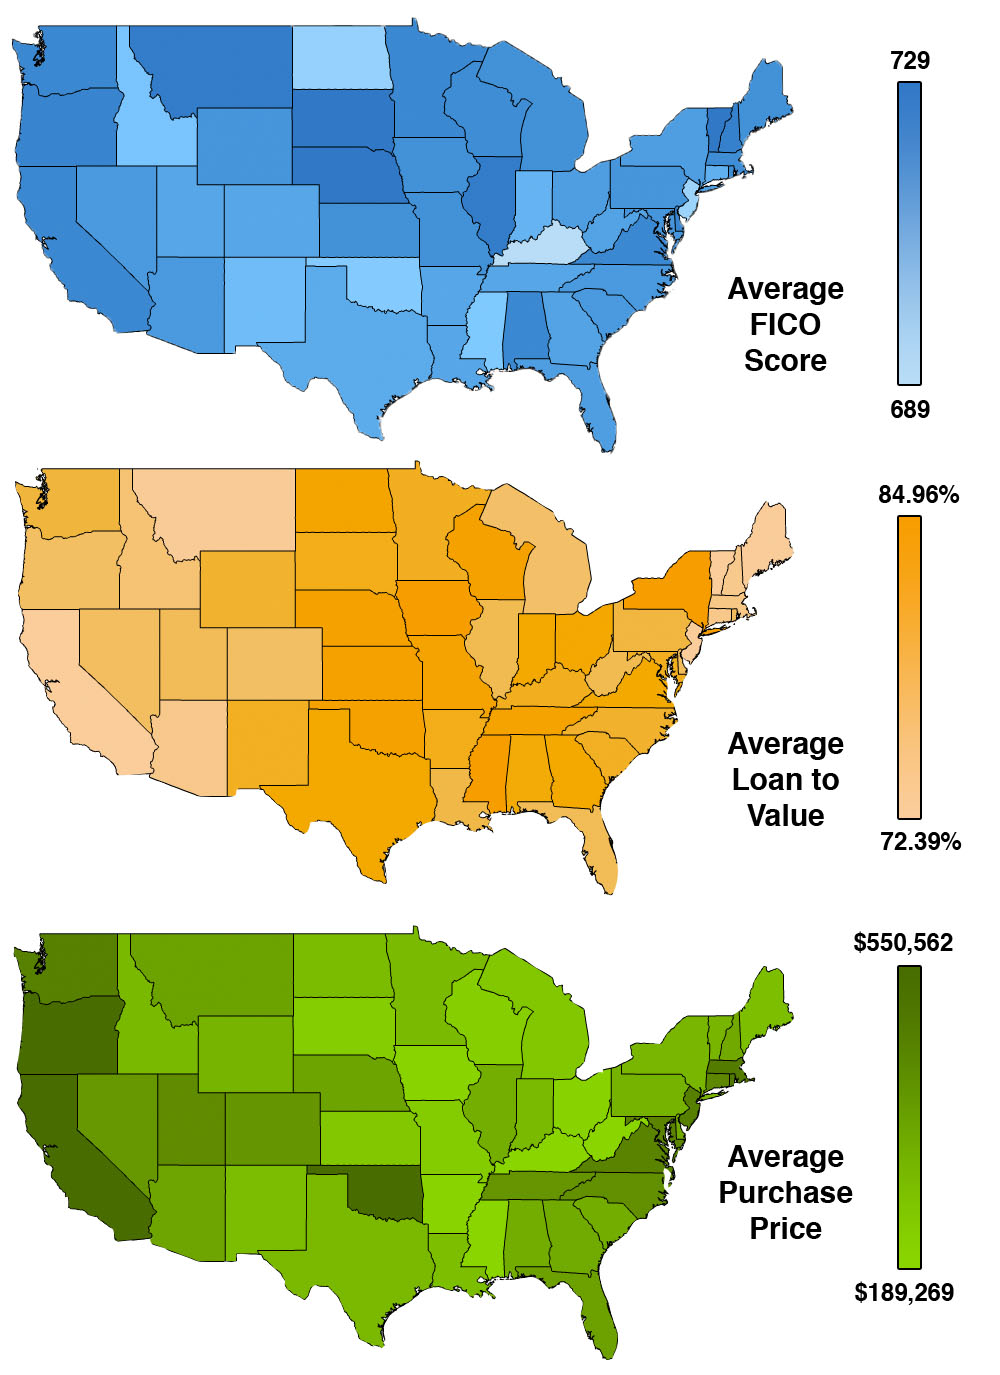 FICO, LTV, and Purchase Prices Across the Country